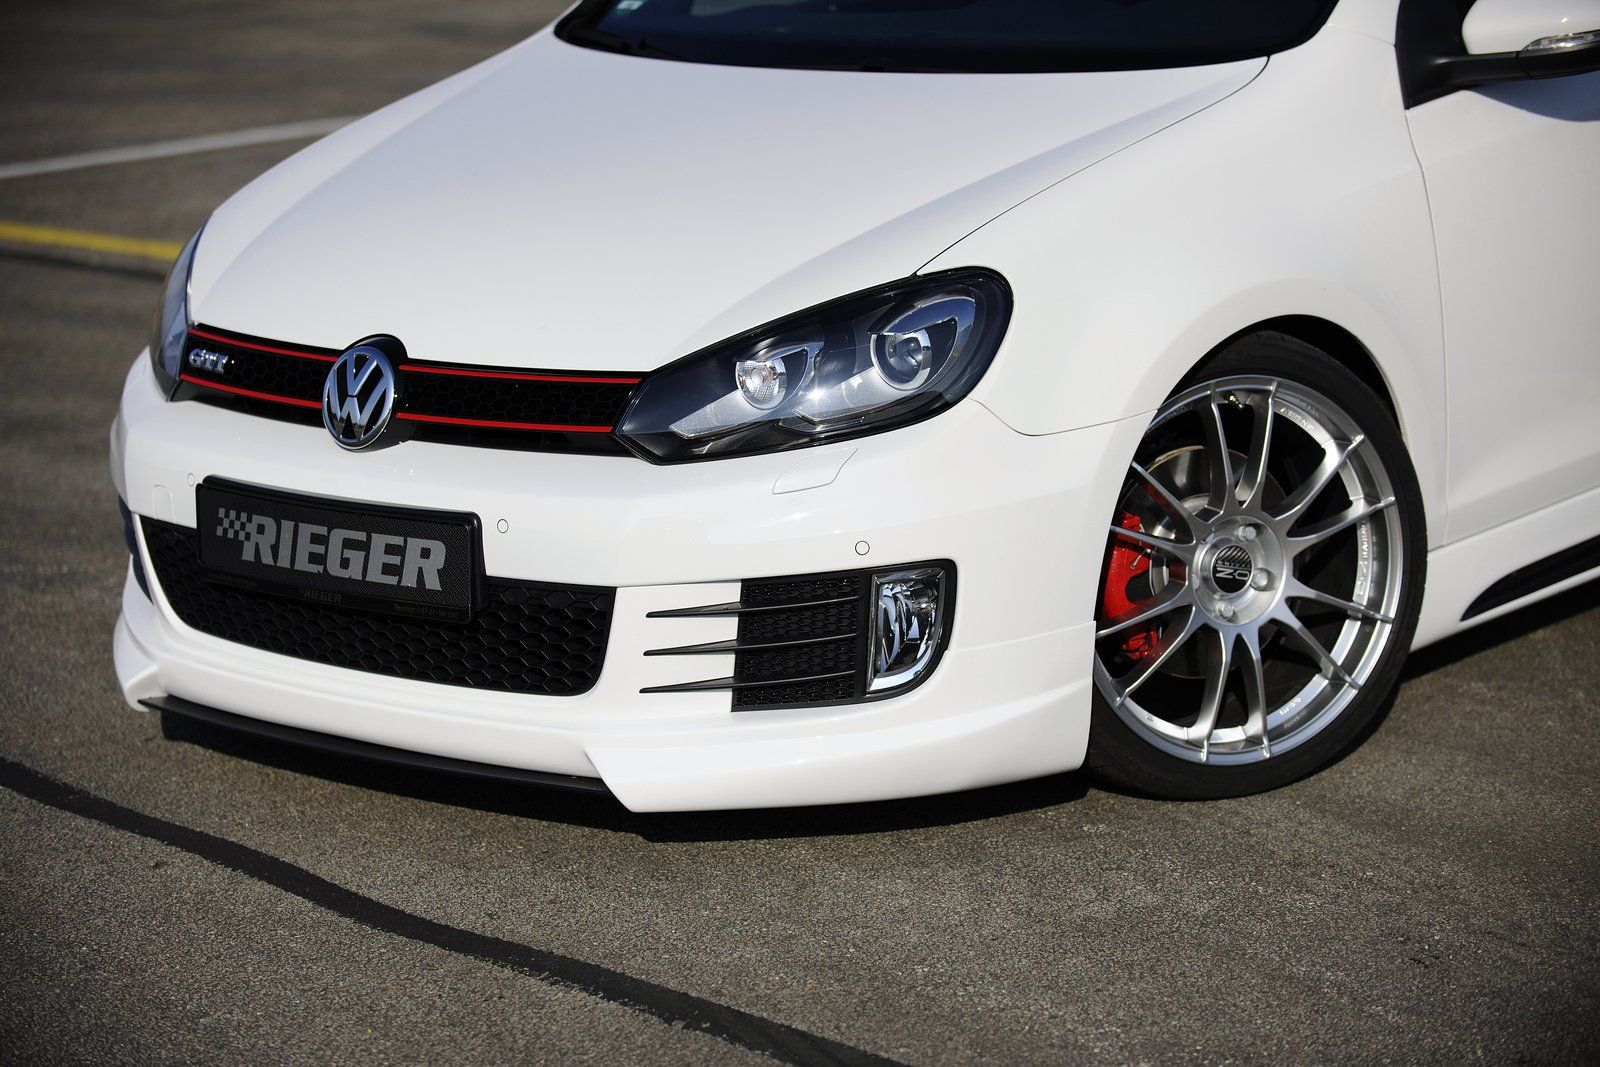 vw golf mk6 rieger 12 vw tuning mag. Black Bedroom Furniture Sets. Home Design Ideas